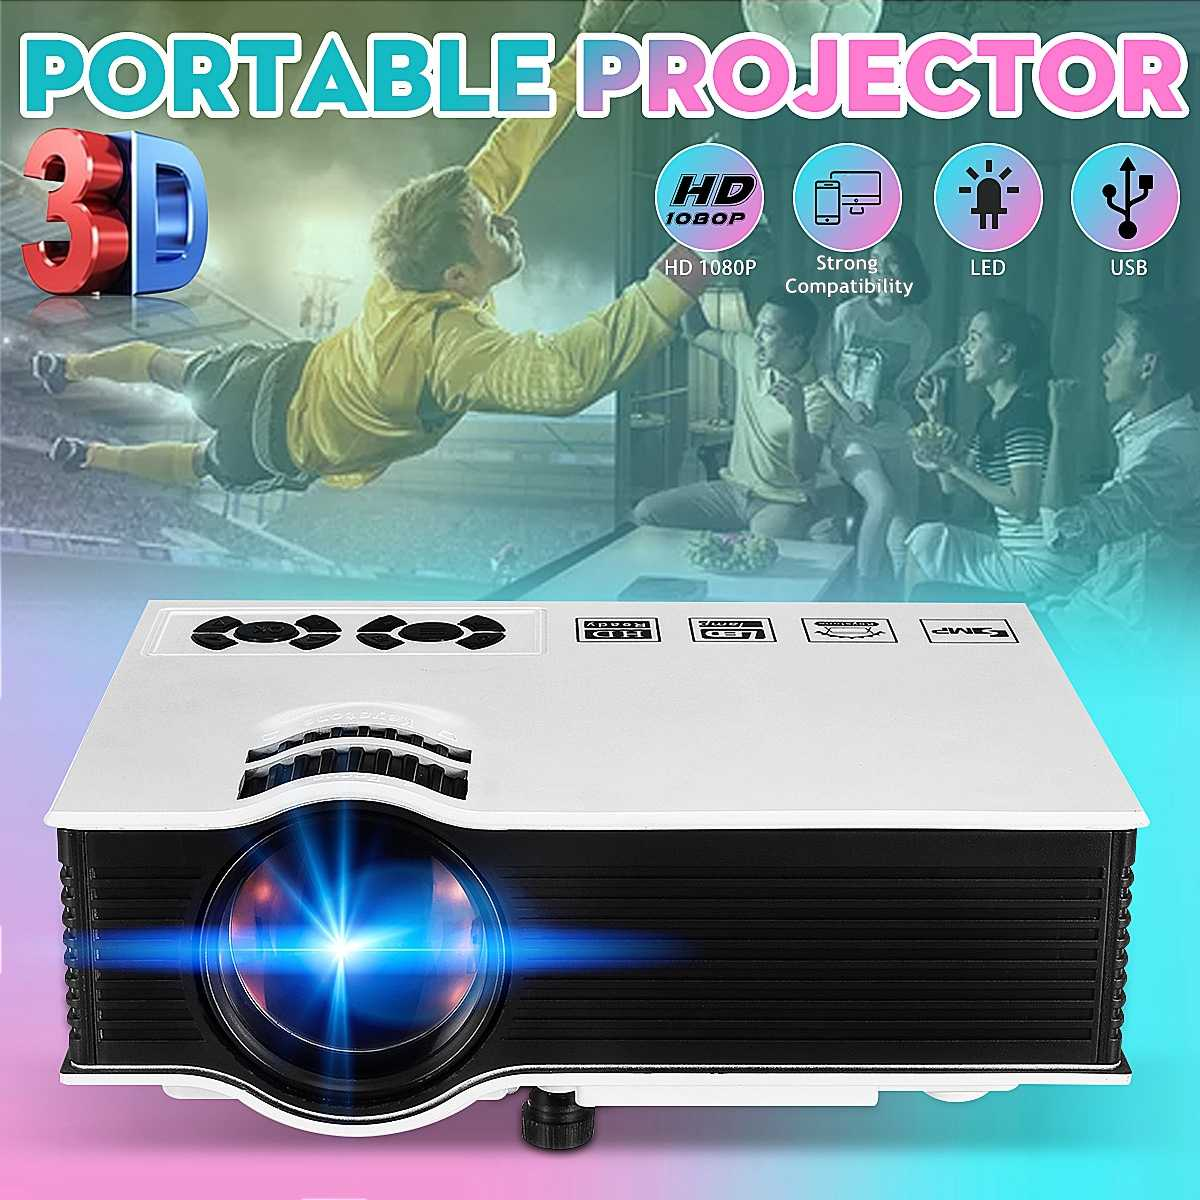 LEORY 7000 Lumen Smart Tragbare Mini LED 3D <font><b>TV</b></font> Projektor Video Heimkino Beamer <font><b>Proyector</b></font> Multimedia Ausgang image